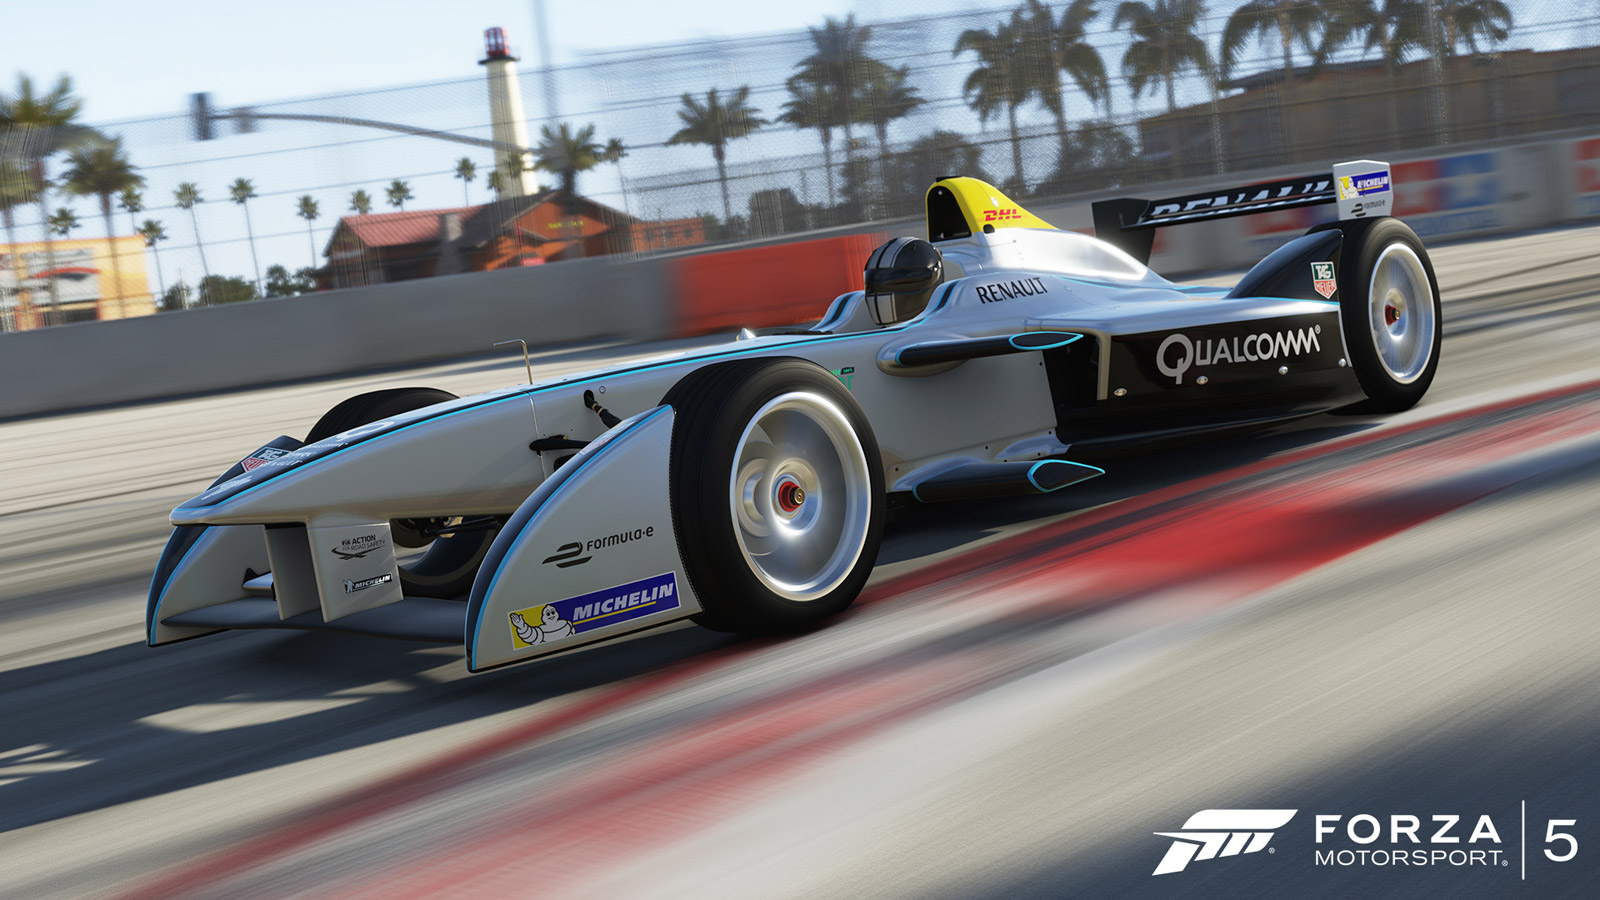 Formula E Electric Racer To Feature In Forza Motorsport 5